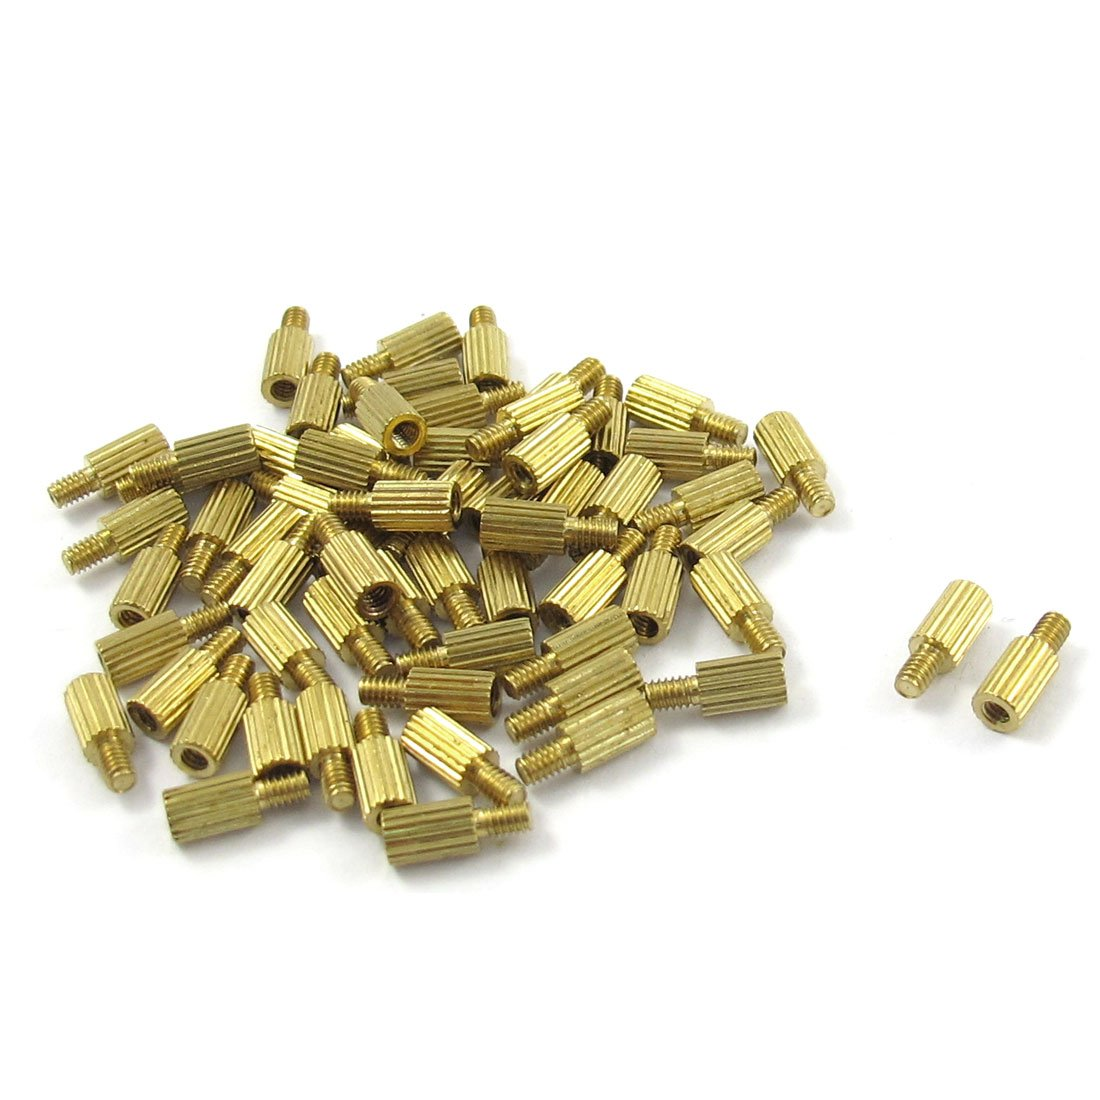 NFLC 50 Pcs Male to Female Thread Brass Pillars Standoff Spacer M2x5mmx8mm m4 male m 25 30 35 40 45 50 55 60 mm x m4 6mm female brass standoff spacer copper hexagonal stud spacer hollow pillars